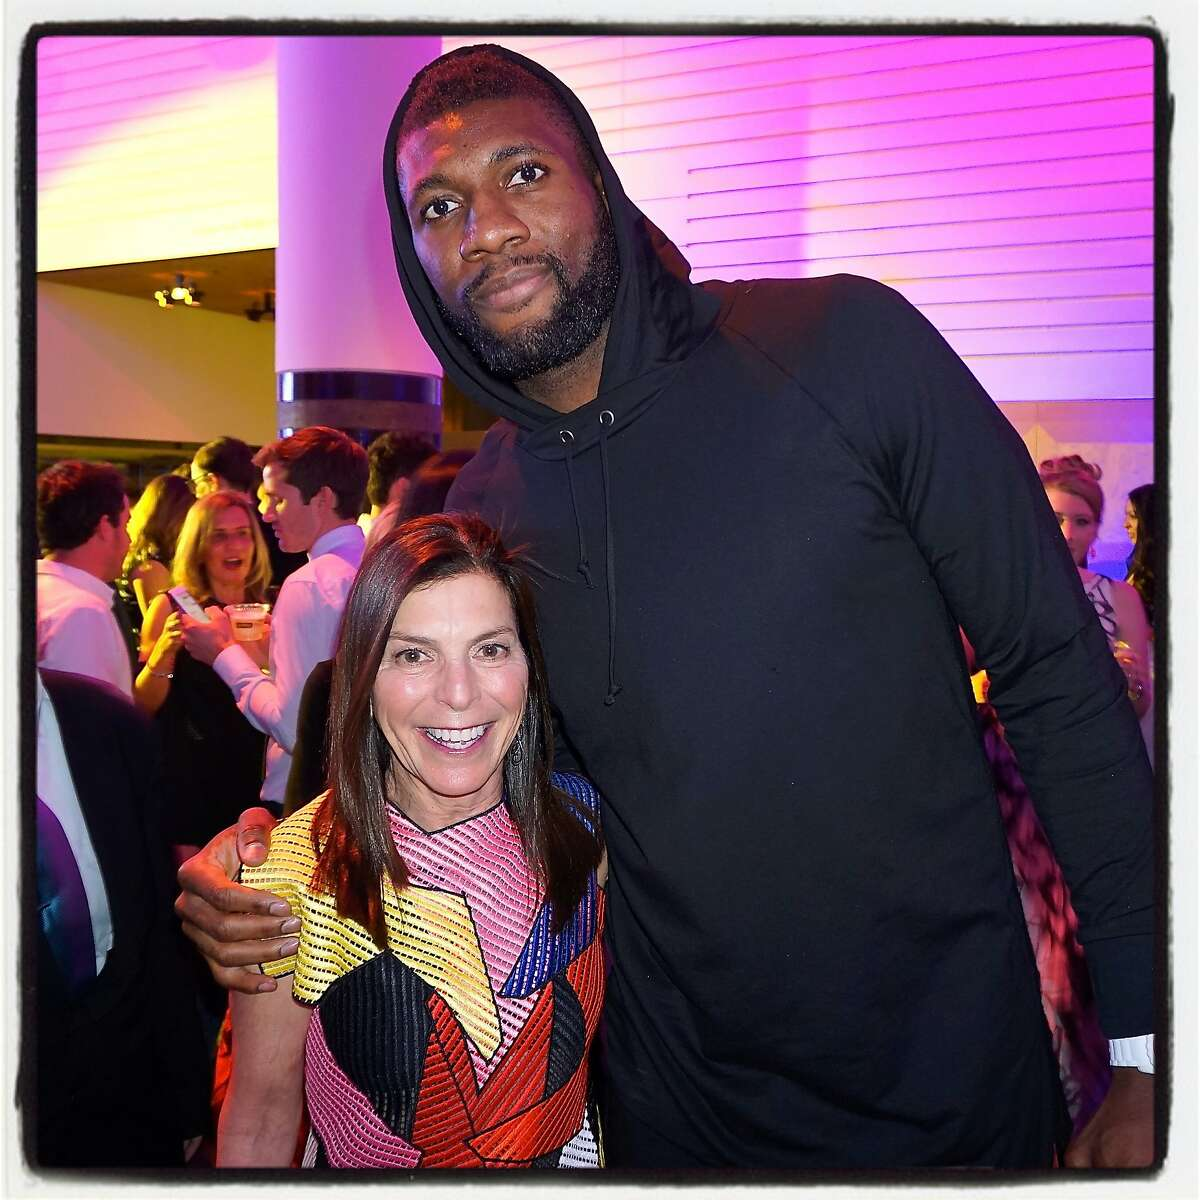 SFMOMA Trustee Susan Swig at the Modern Ball post-party with Warriors' Center Festus Ezeli. May 2016.